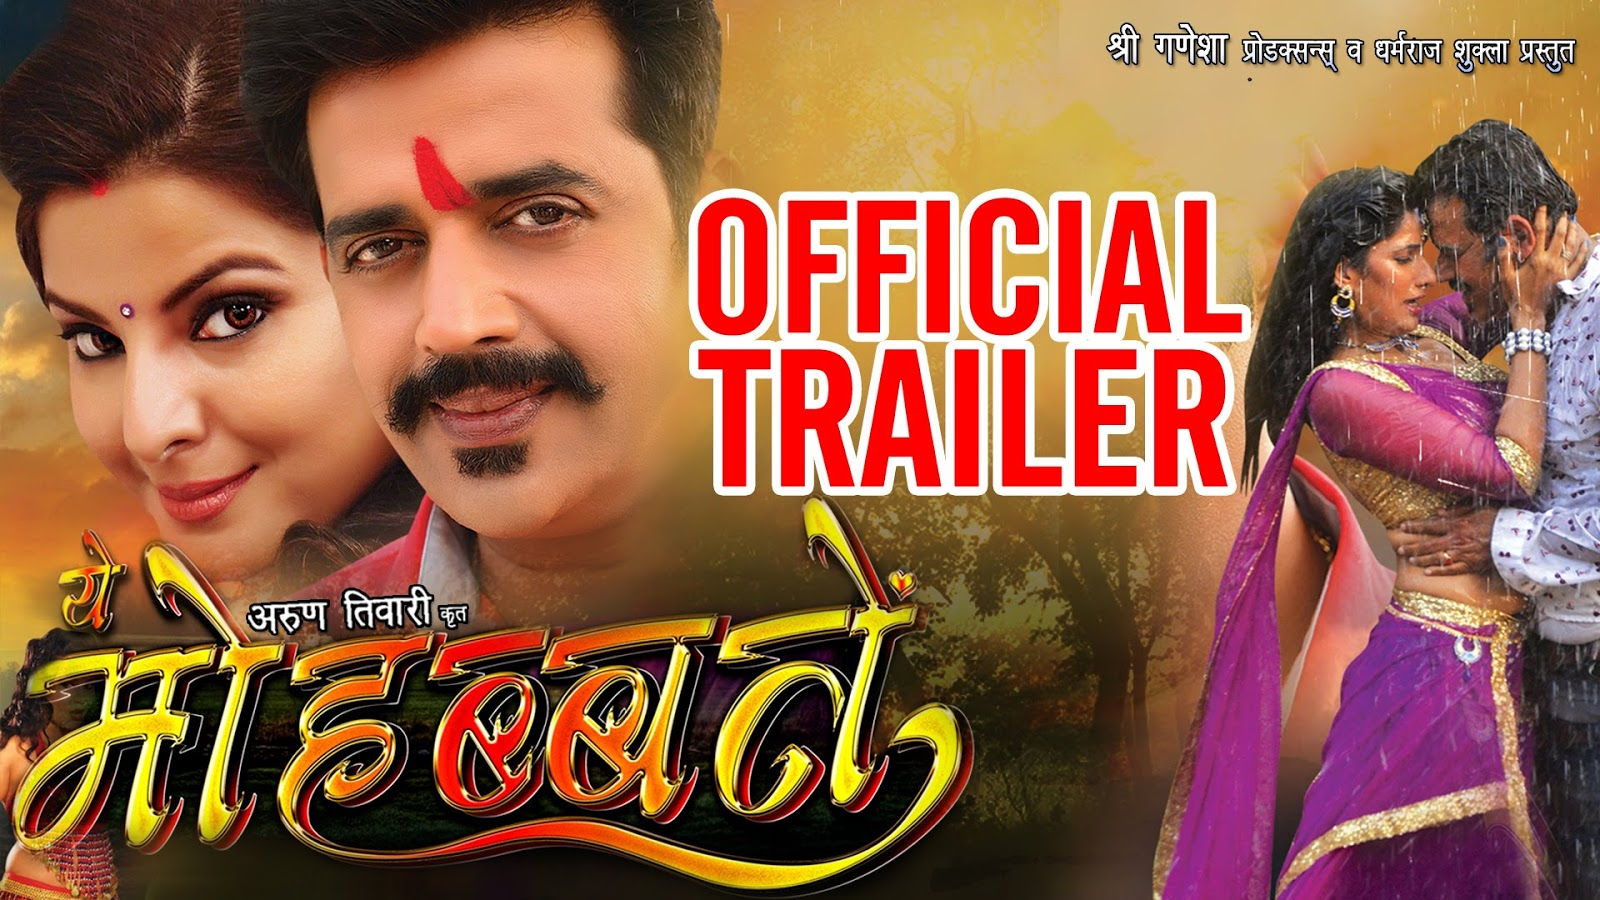 Bhojpuri Movie Ye Mohabattein Trailer video youtube Feat Actor Ravi Kishan, Smriti Sinha, Poonam Dubey, Avdhesh Mishra first look poster, movie wallpaper